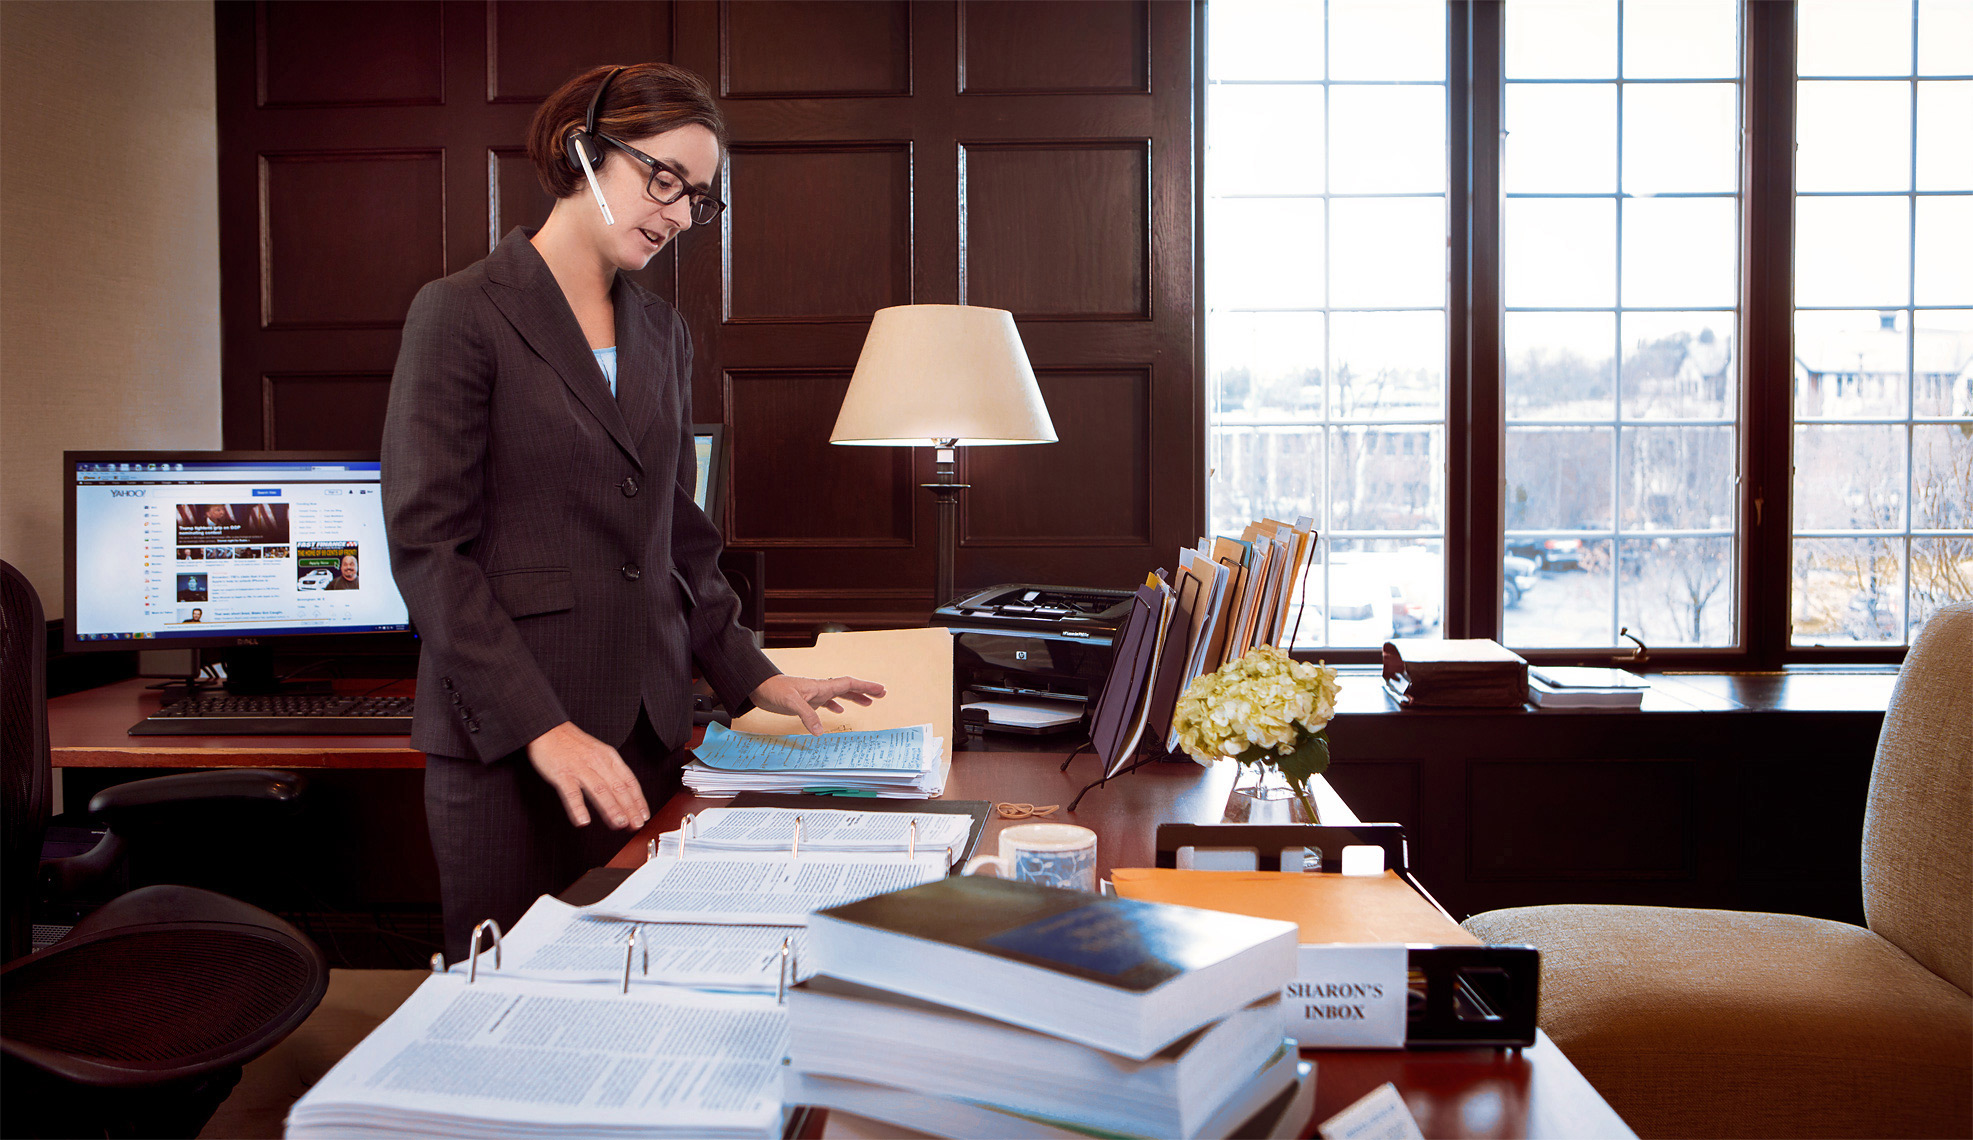 office-work-lifestyle-photograph-of-female-attorney